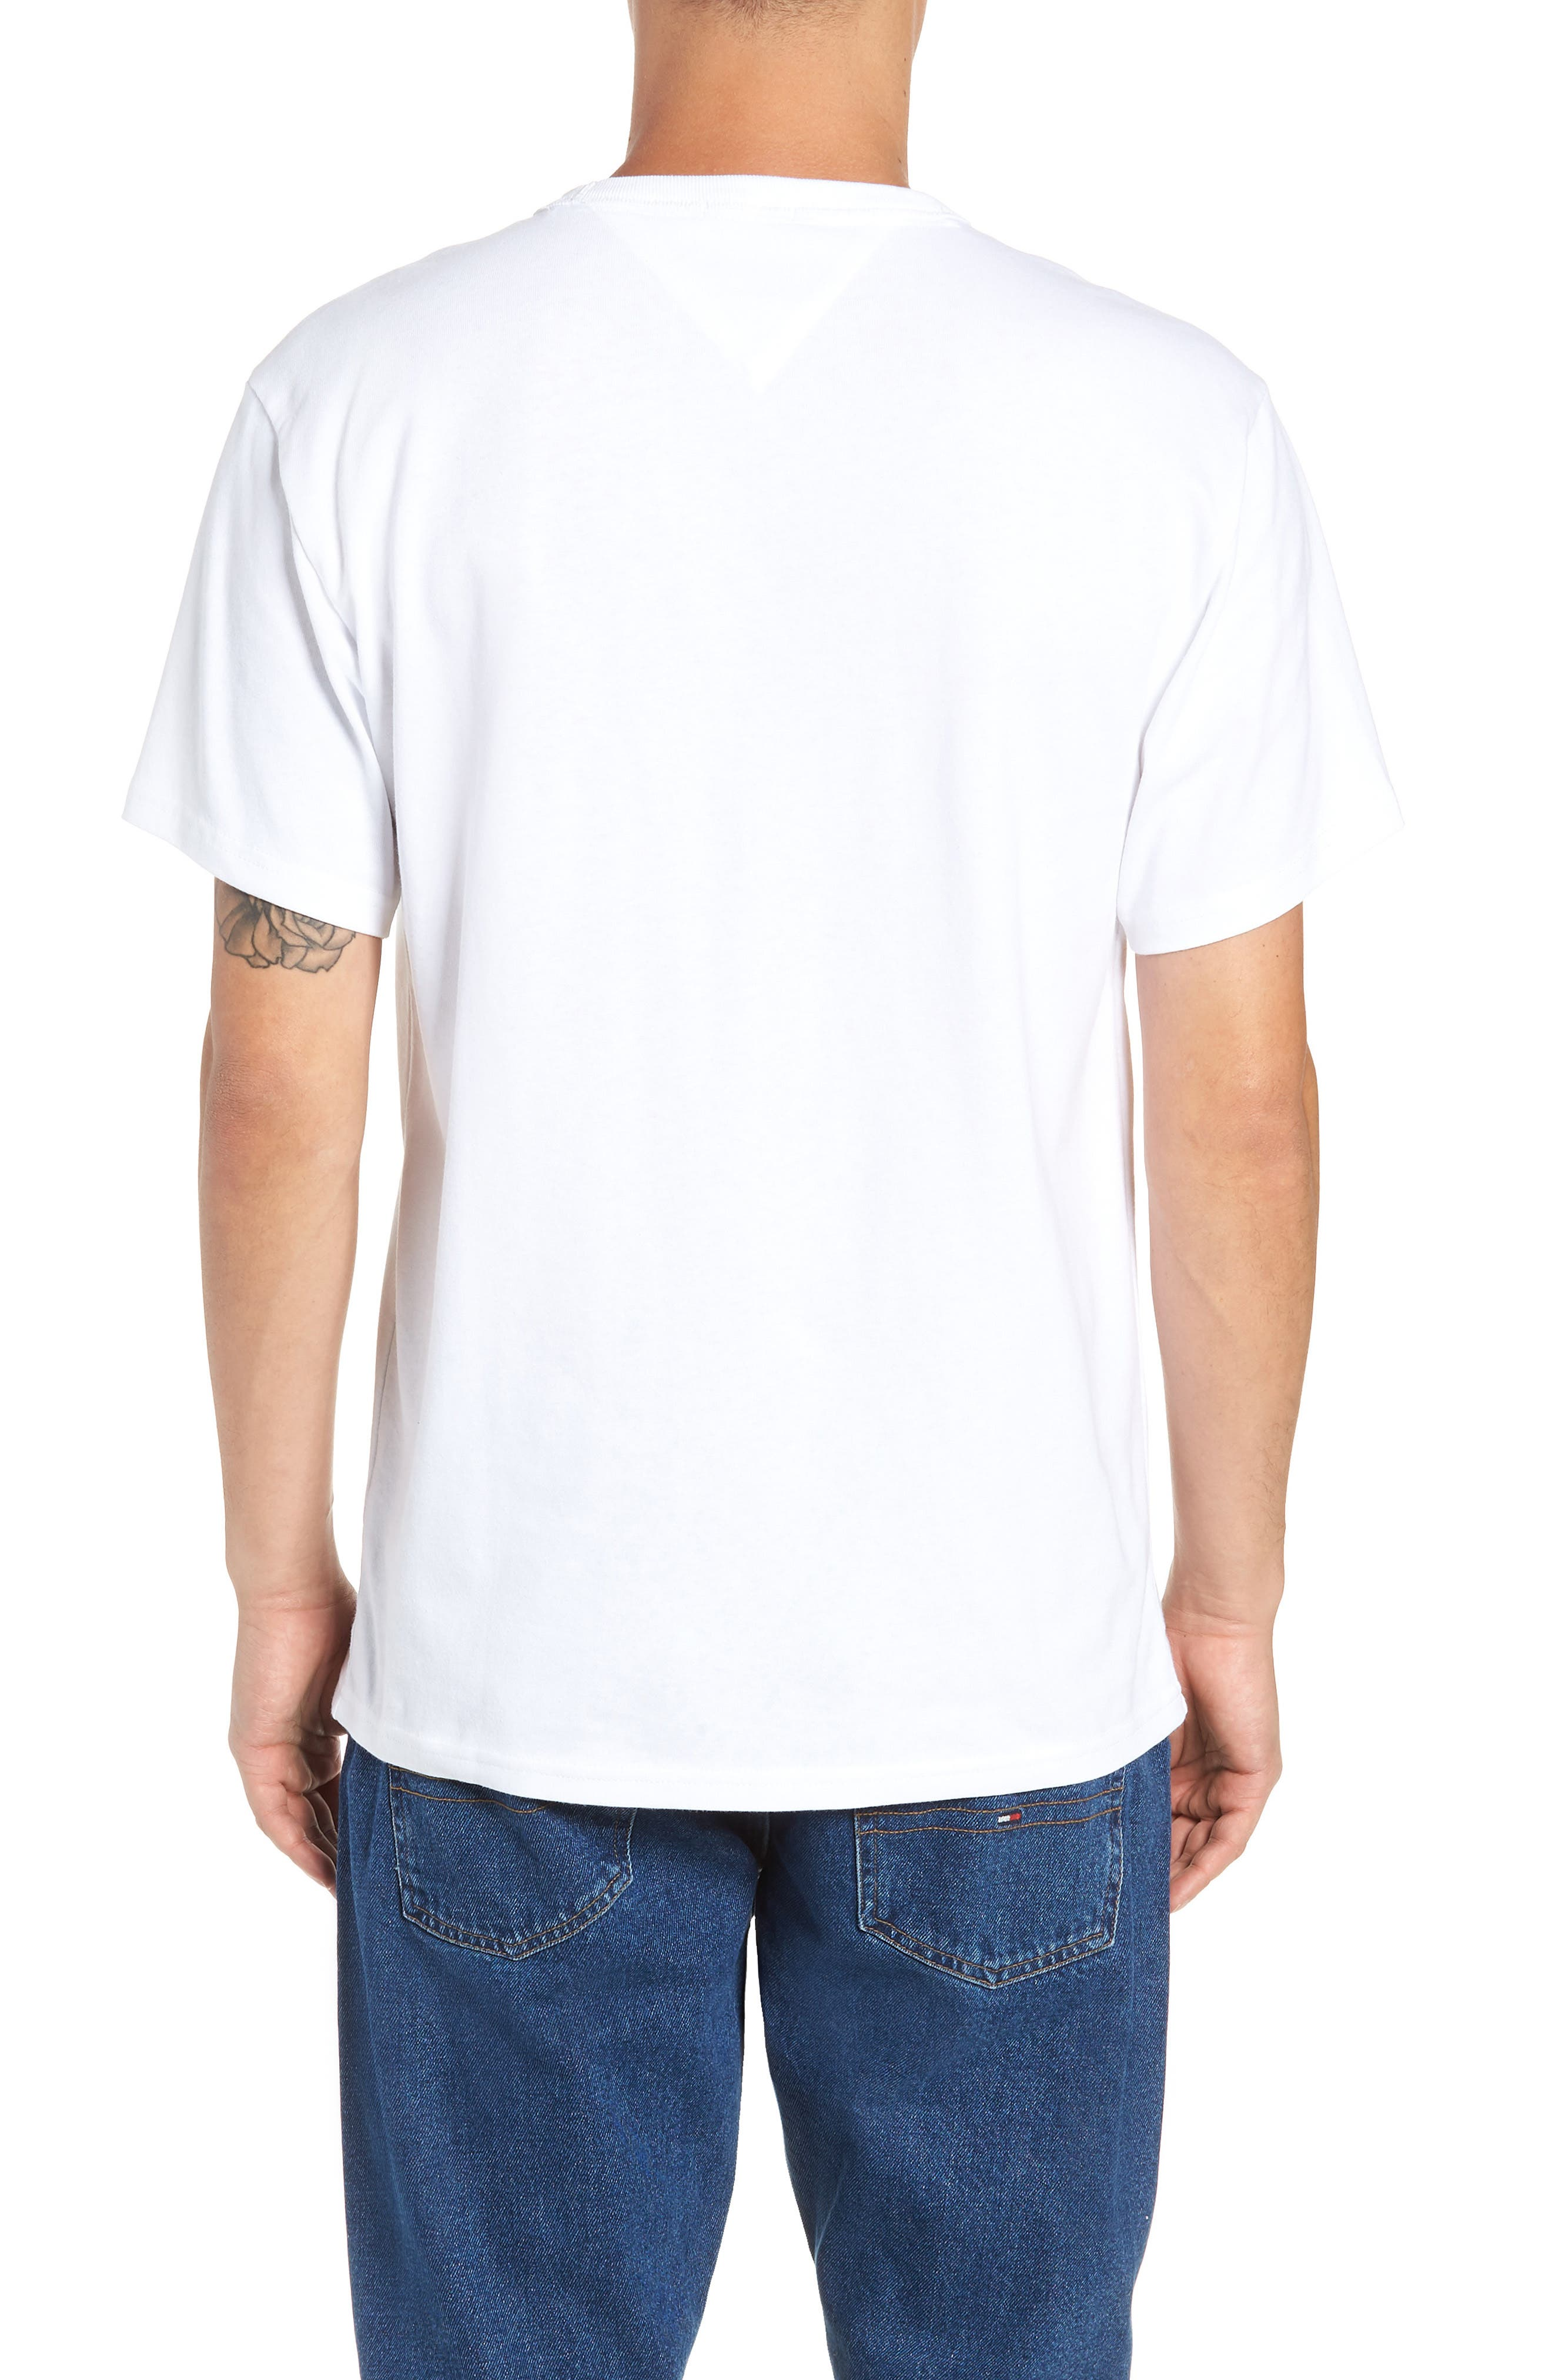 TOMMY JEANS,                             Essential Graphic T-Shirt,                             Alternate thumbnail 2, color,                             100